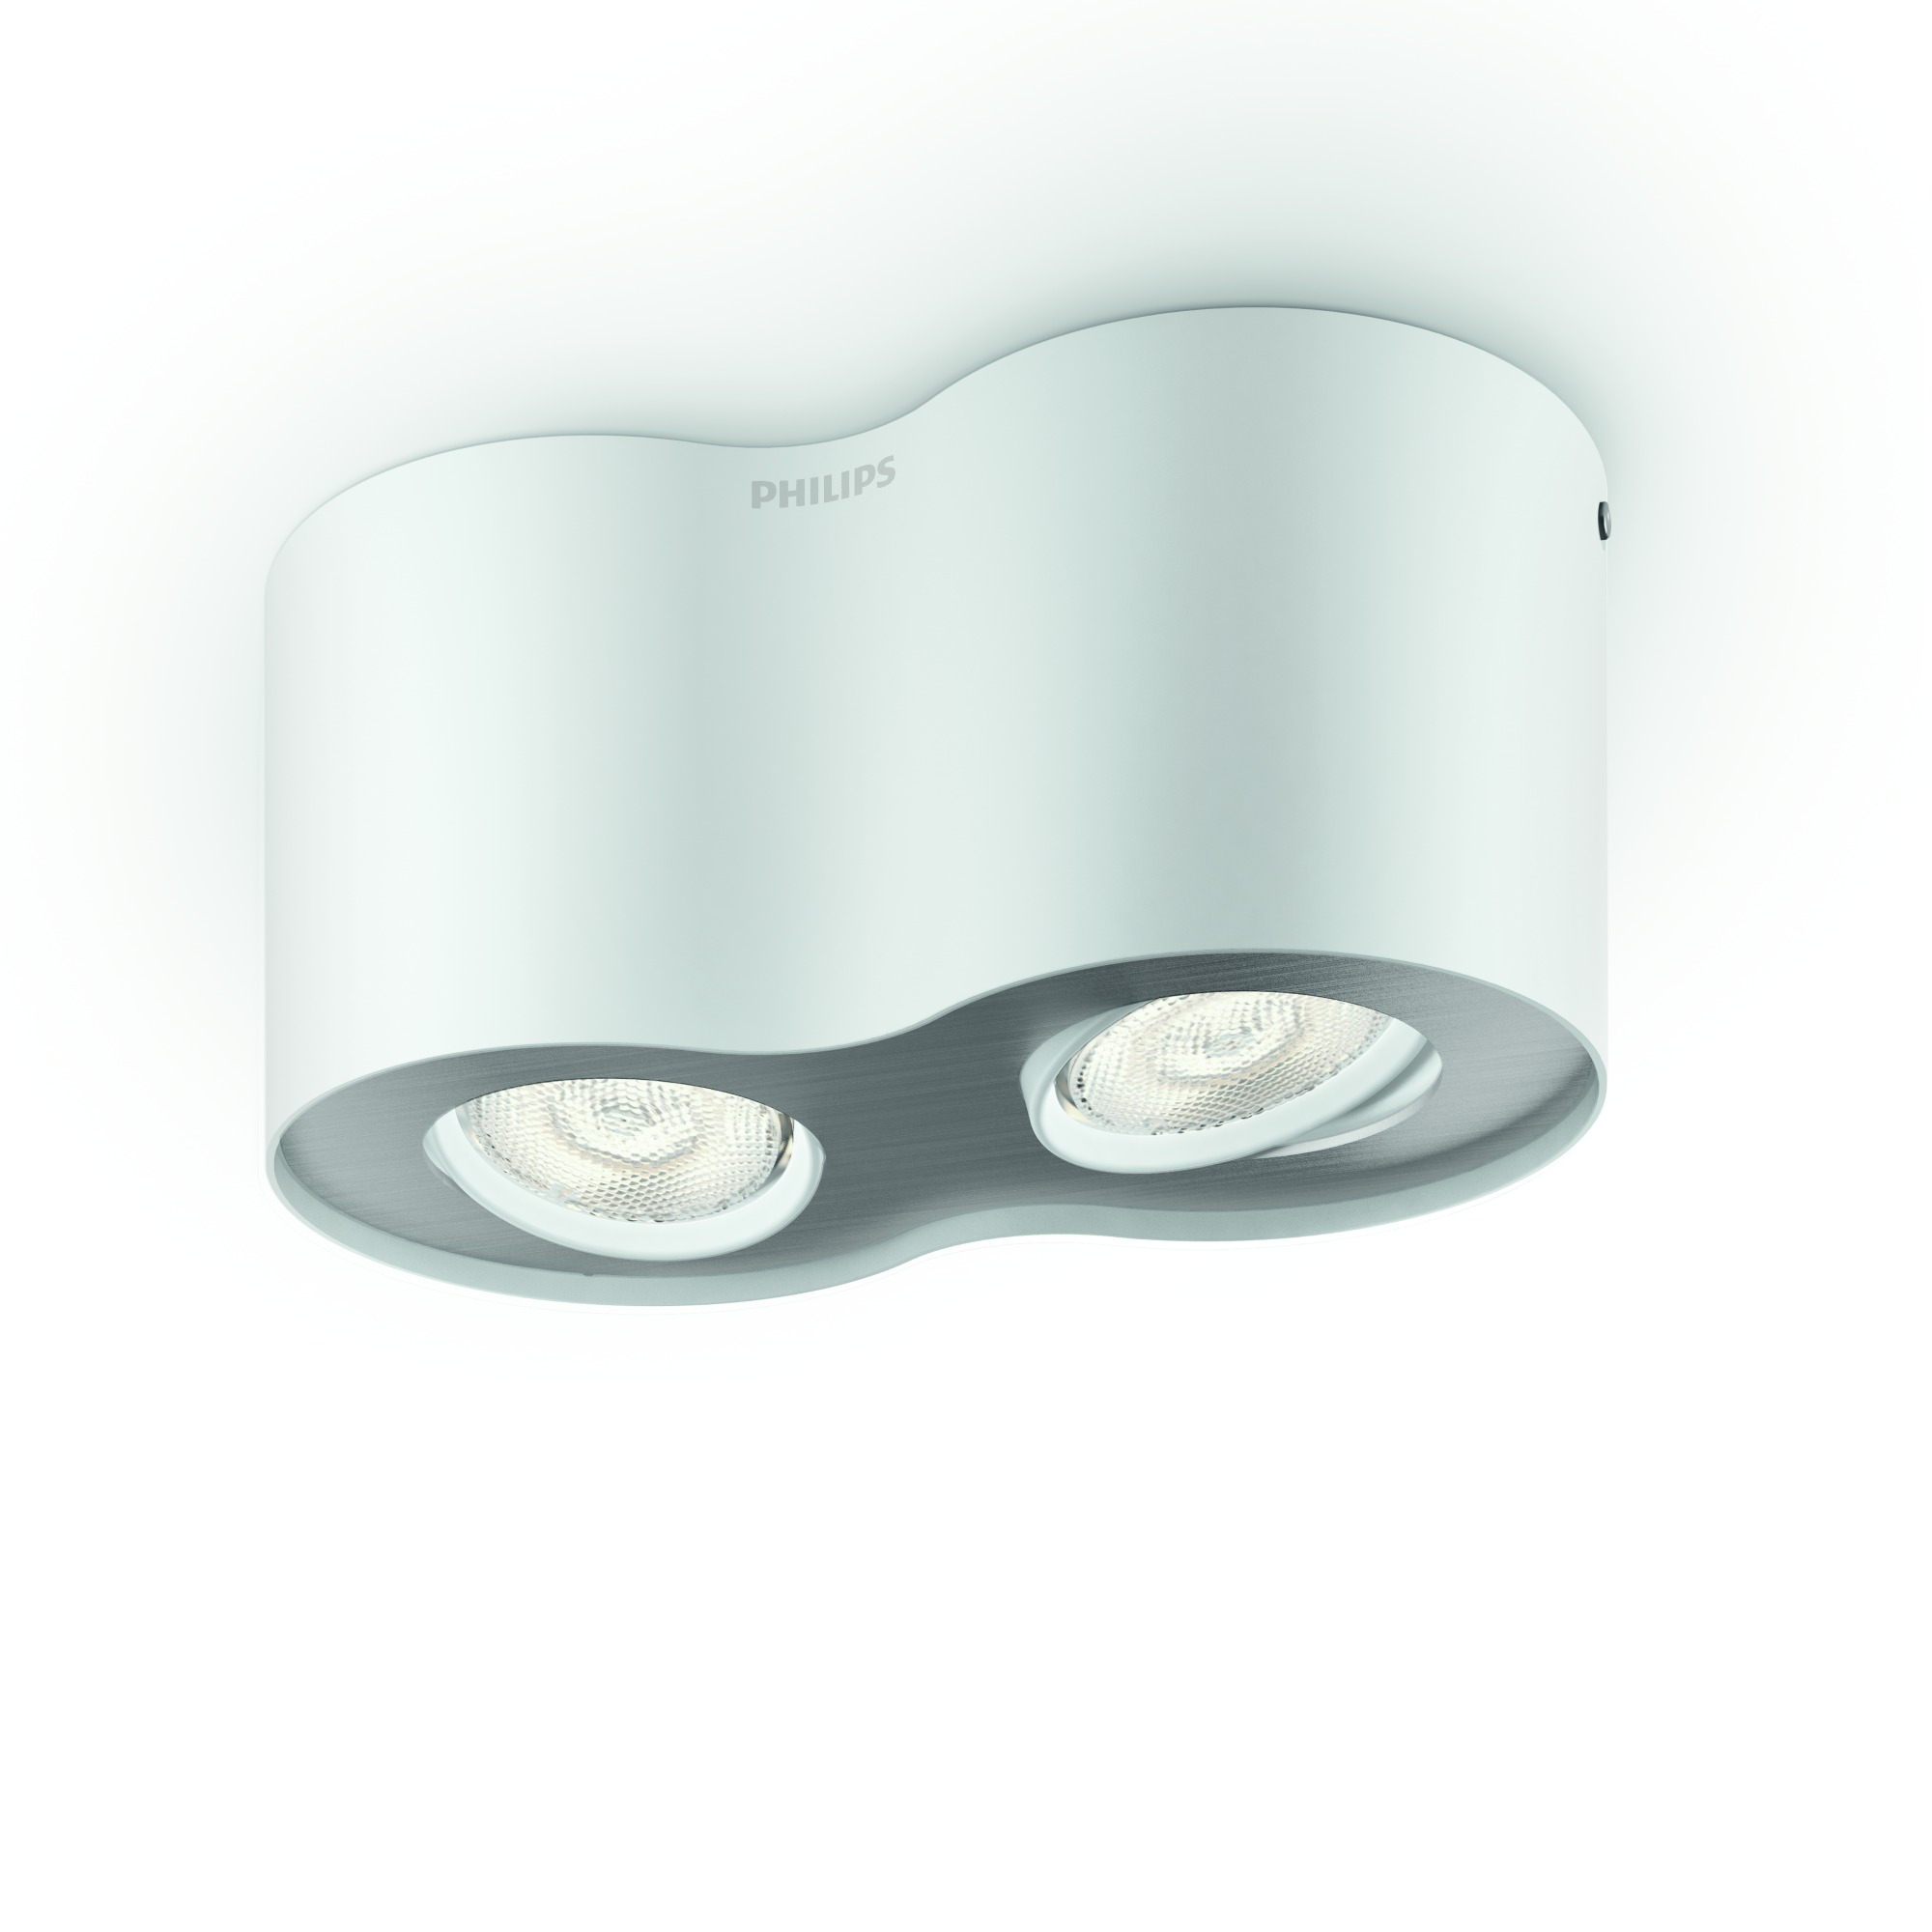 Tweelamps LED-spot Phase in wit